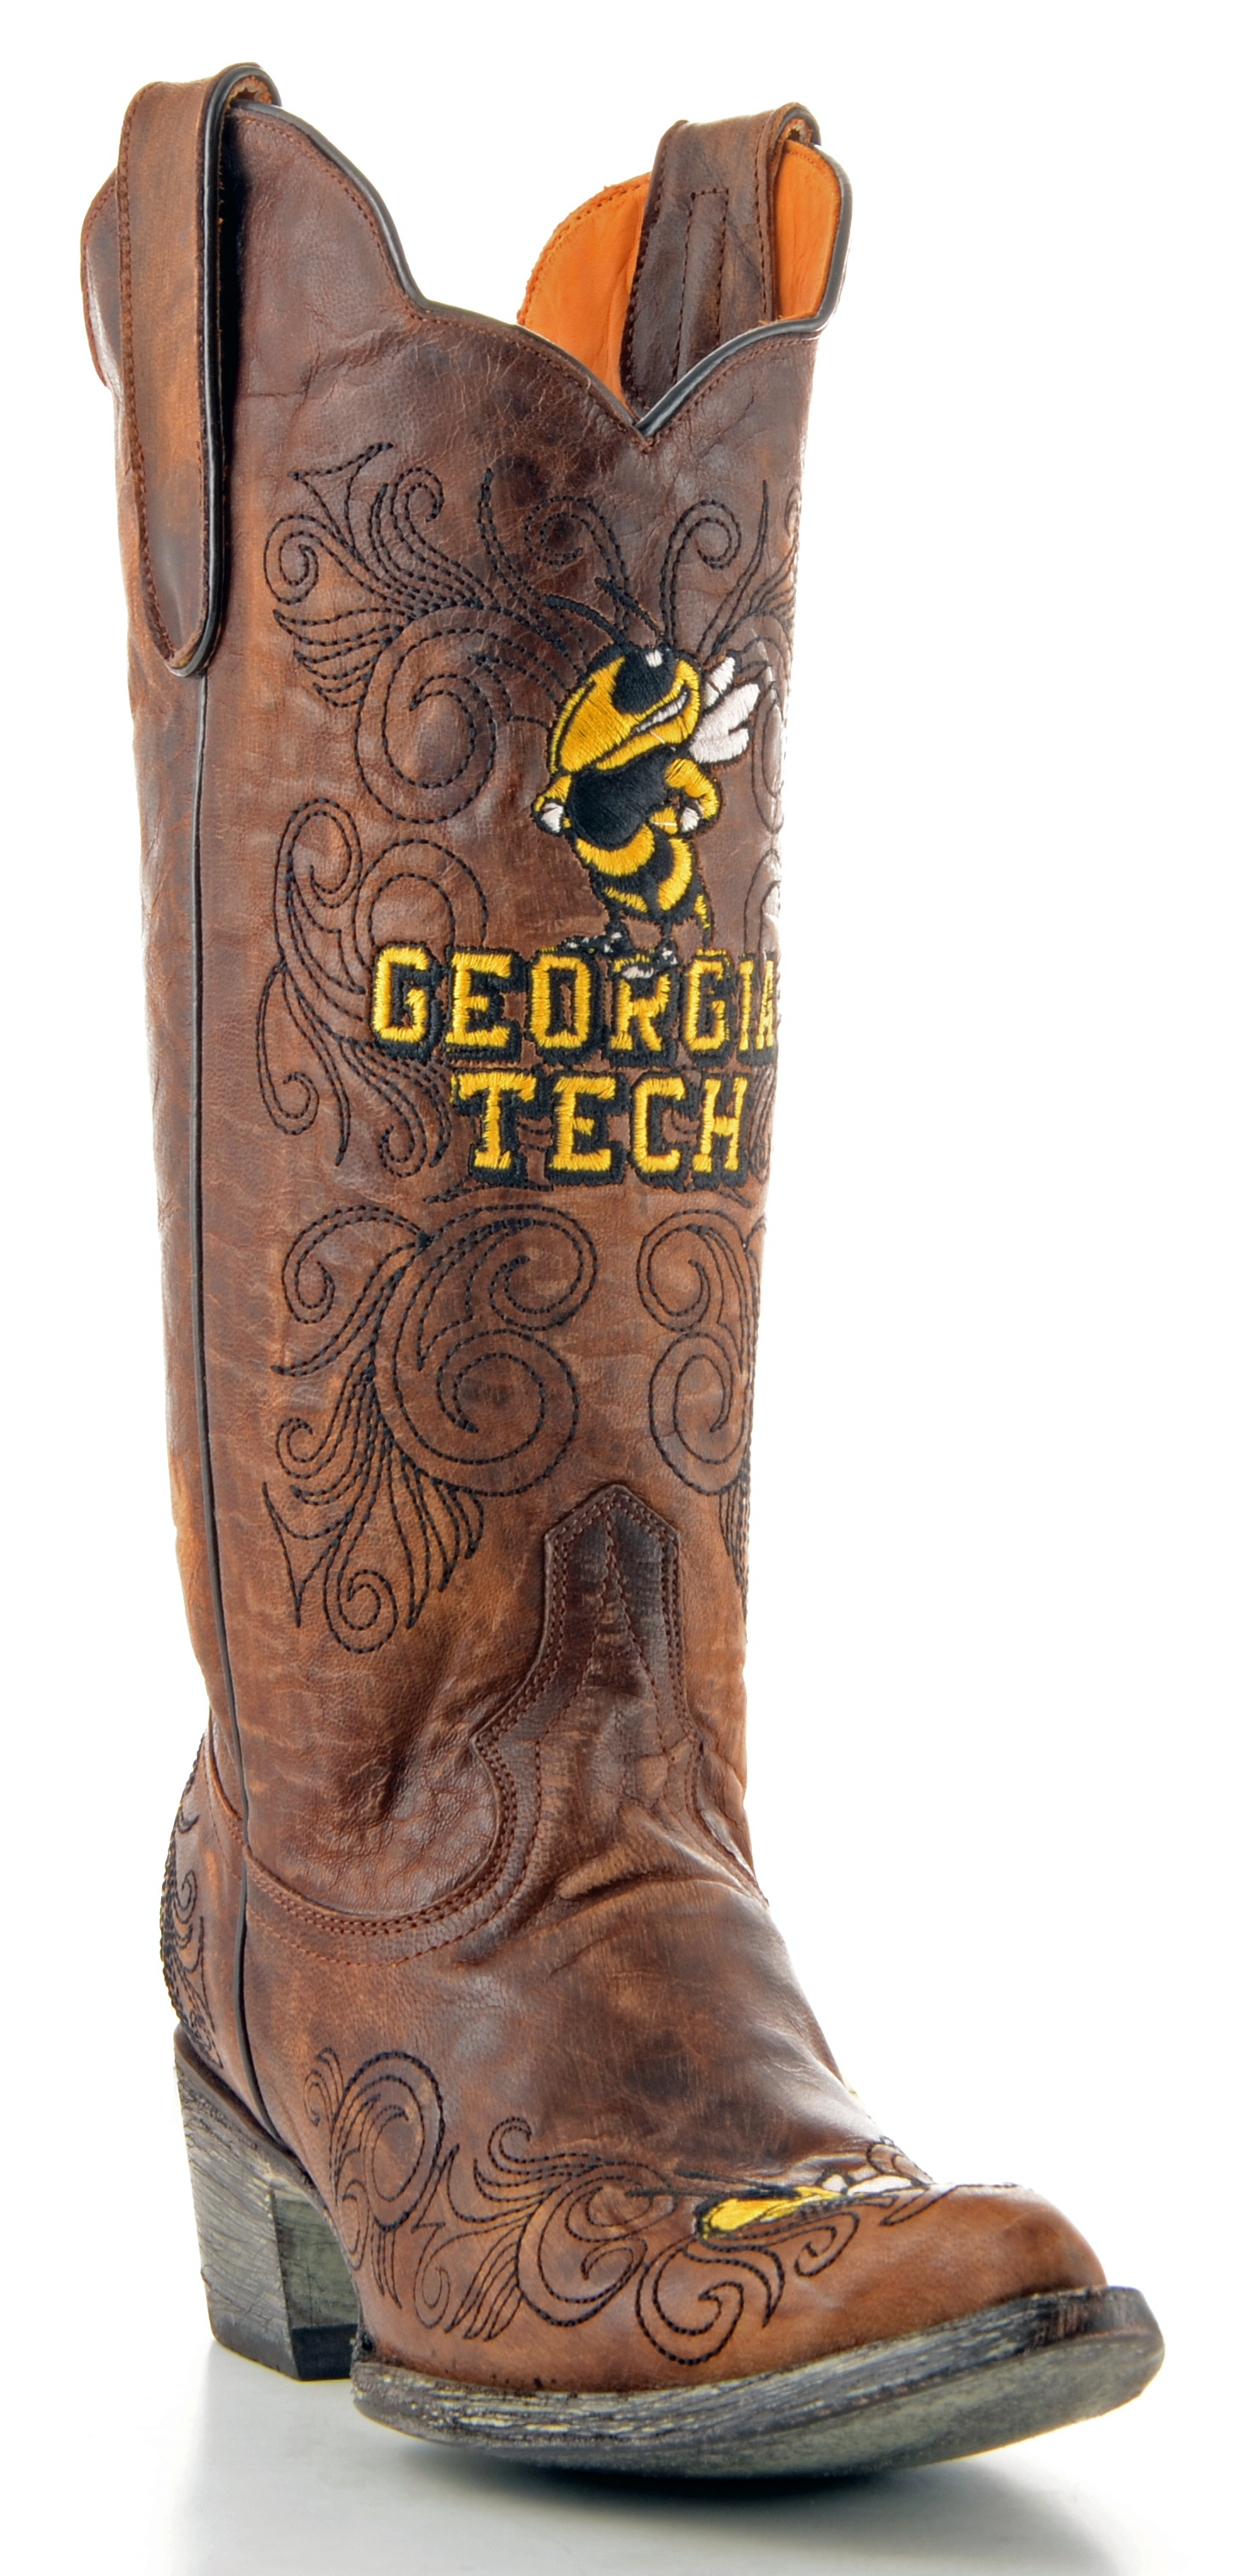 Gameday Boots Womens College Team Georgia Tech Brass GT-L037-1 by GameDay Boots